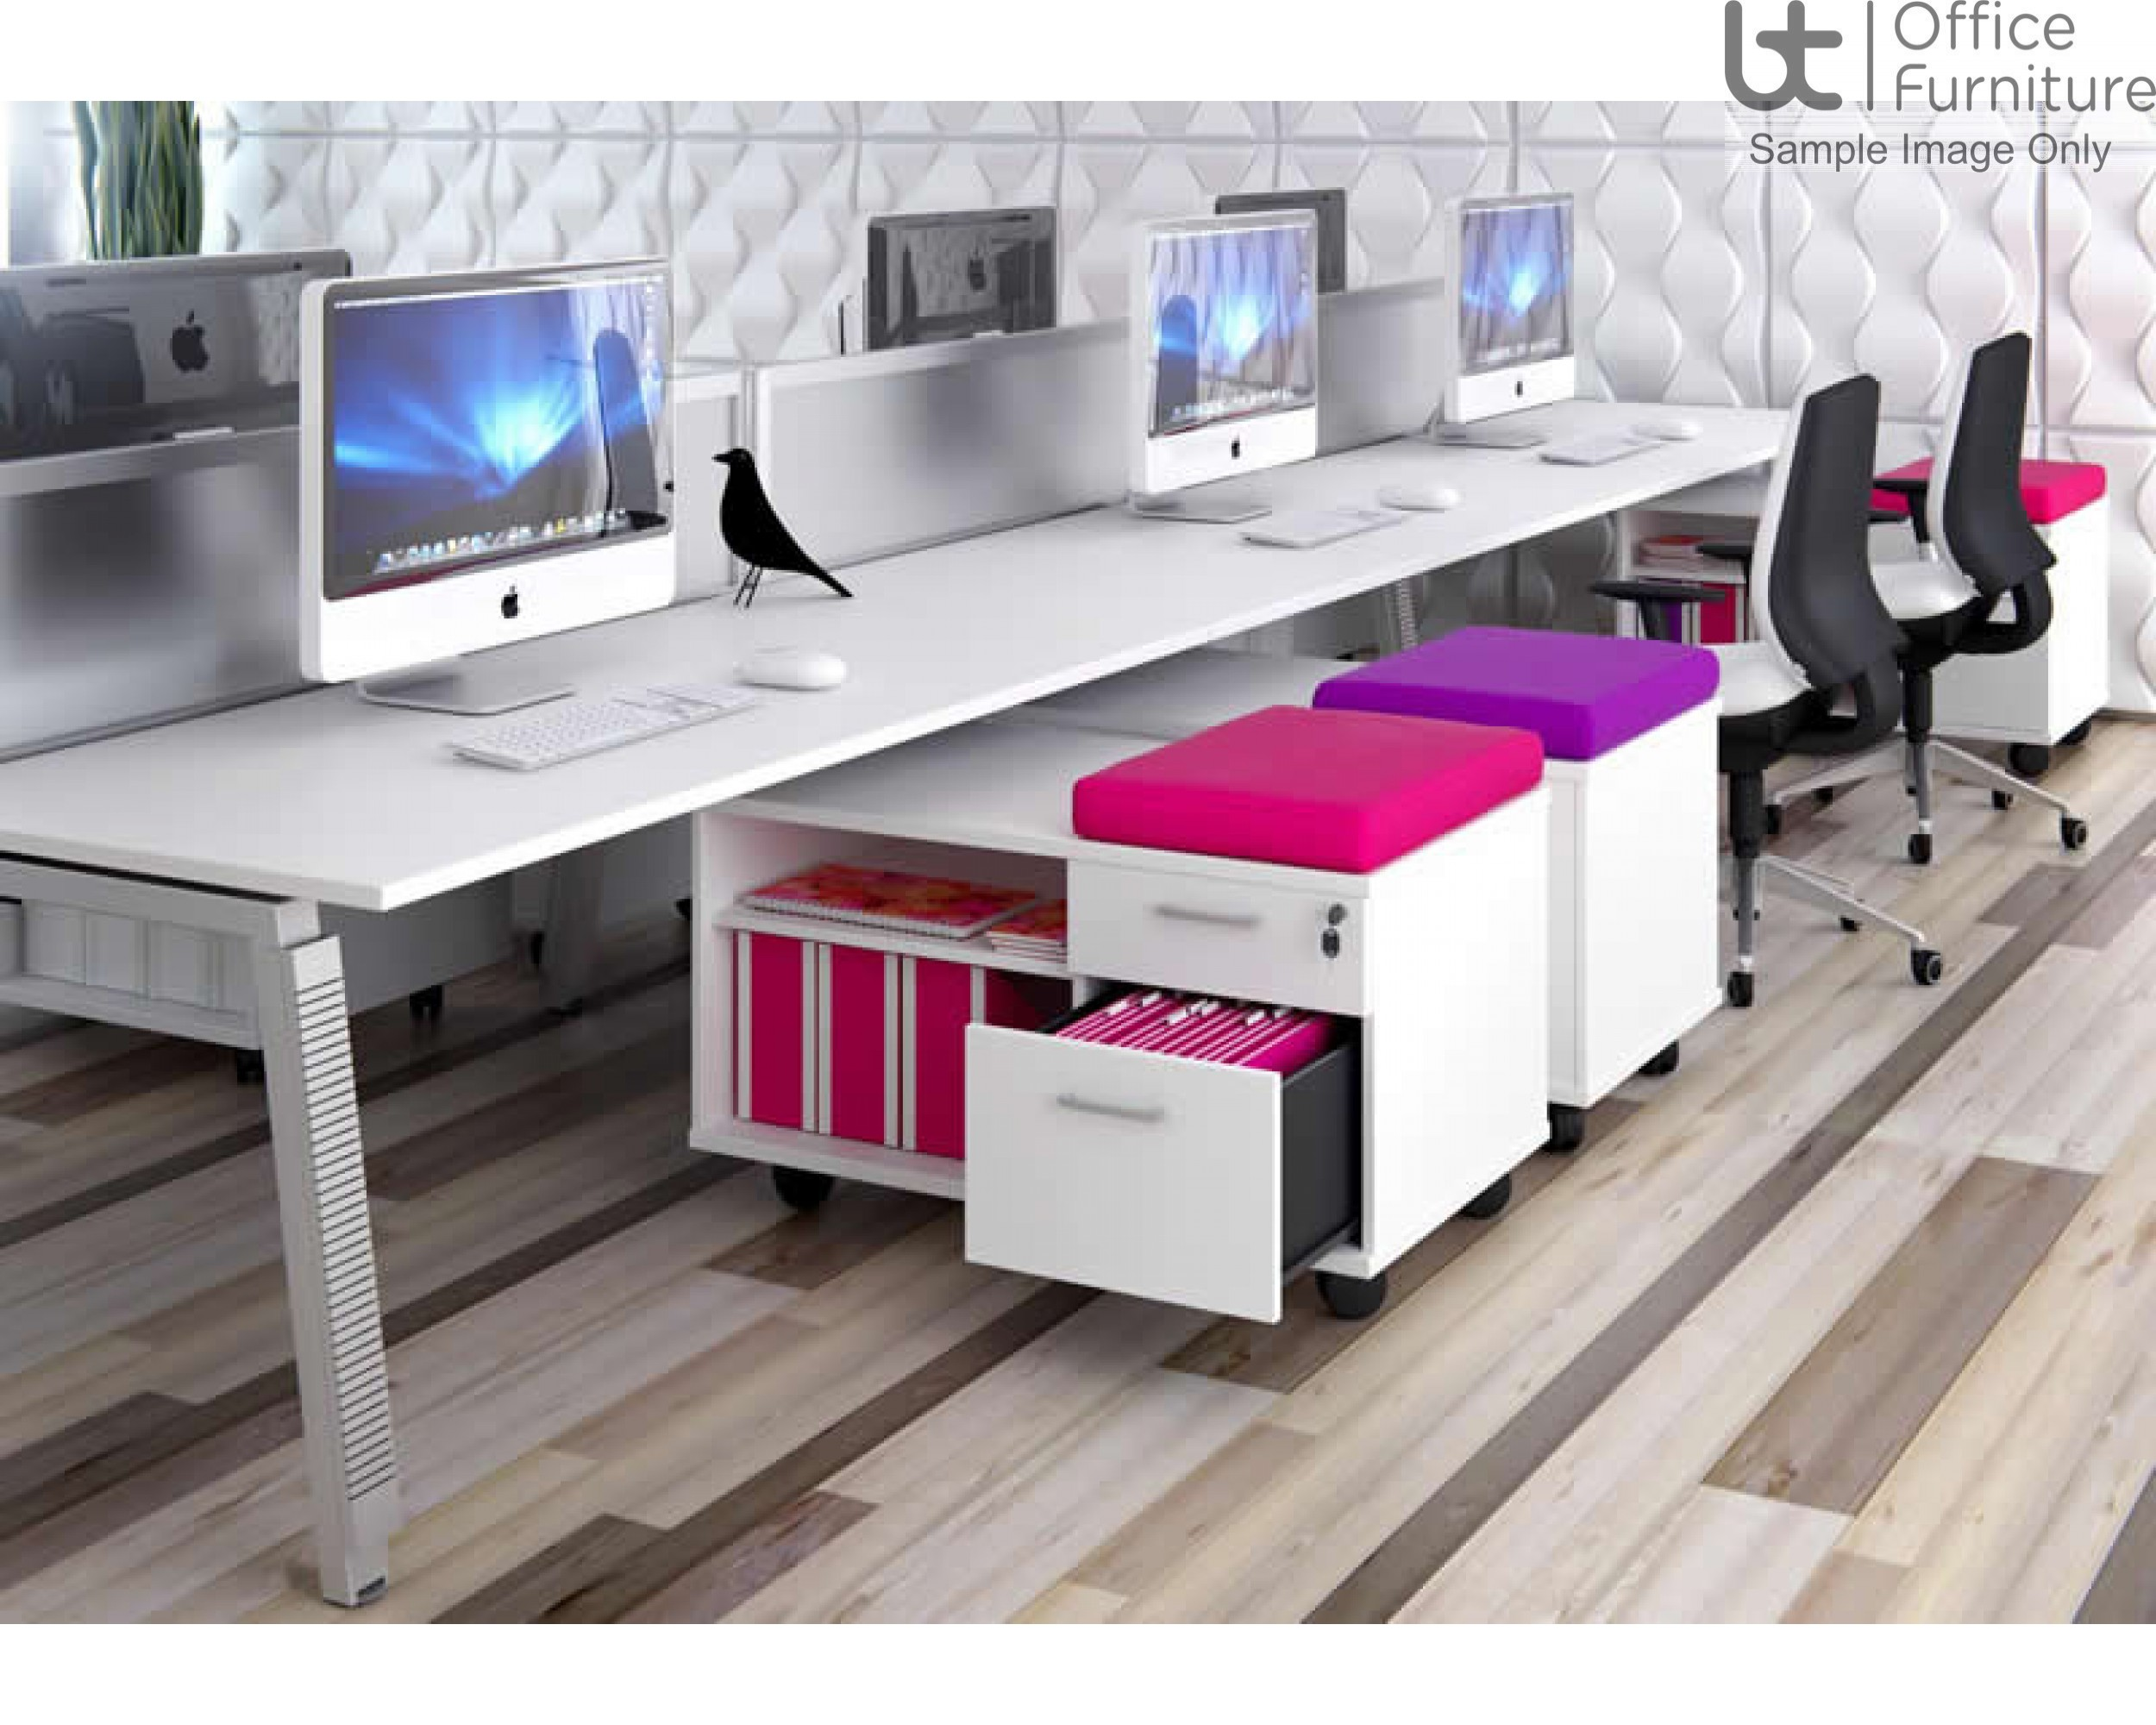 Elite Double Sided Under Desk Mobile Storage Unit with Seat Pad